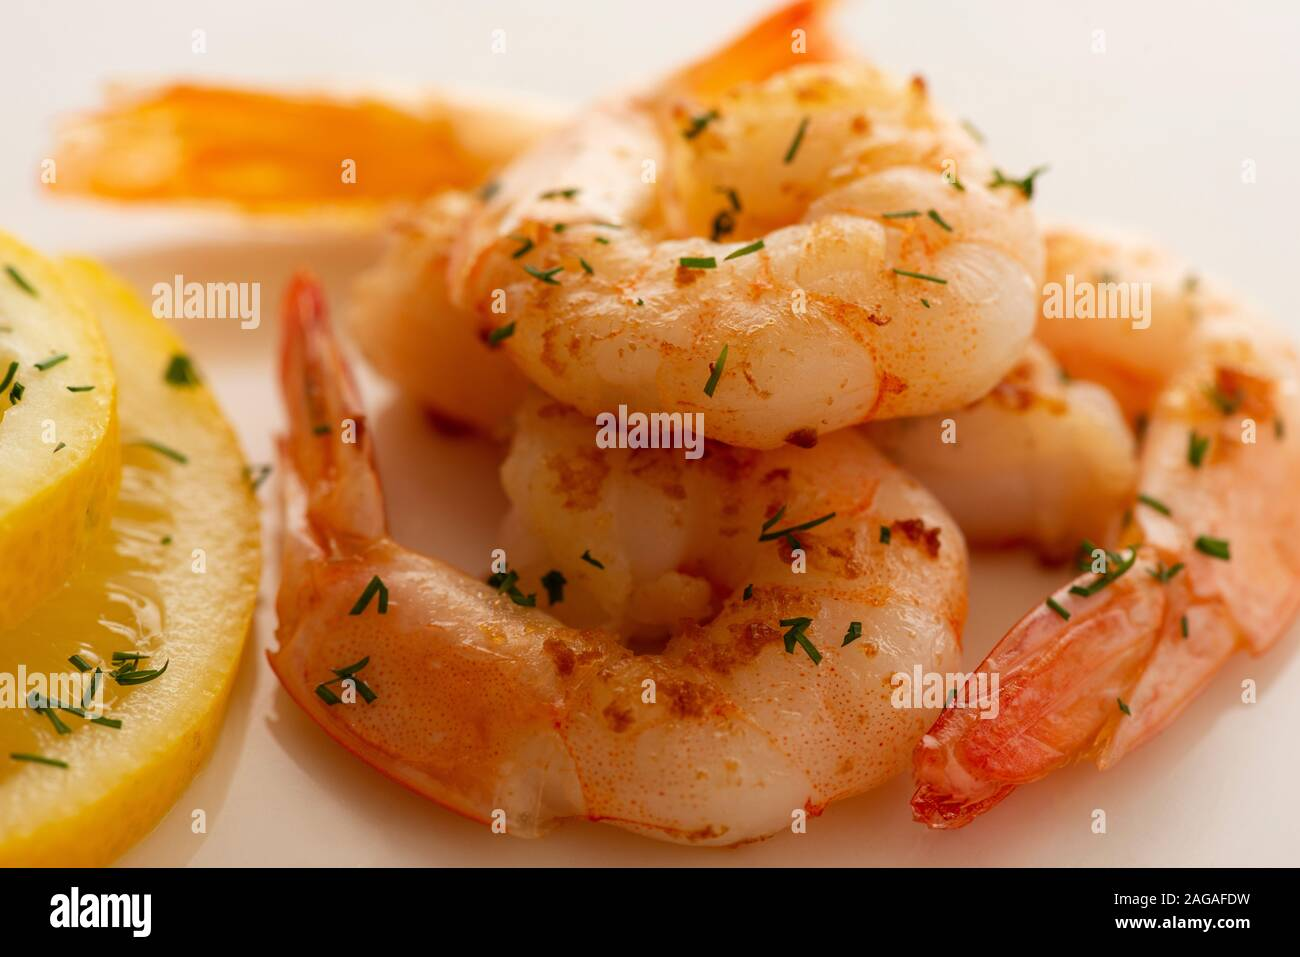 close-up-view-of-whole-freshly-cooked-and-peeled-prawns-or-shrimps-on-bright-white-background-as-gourmet-seafood-concept-2AGAFDW.jpg